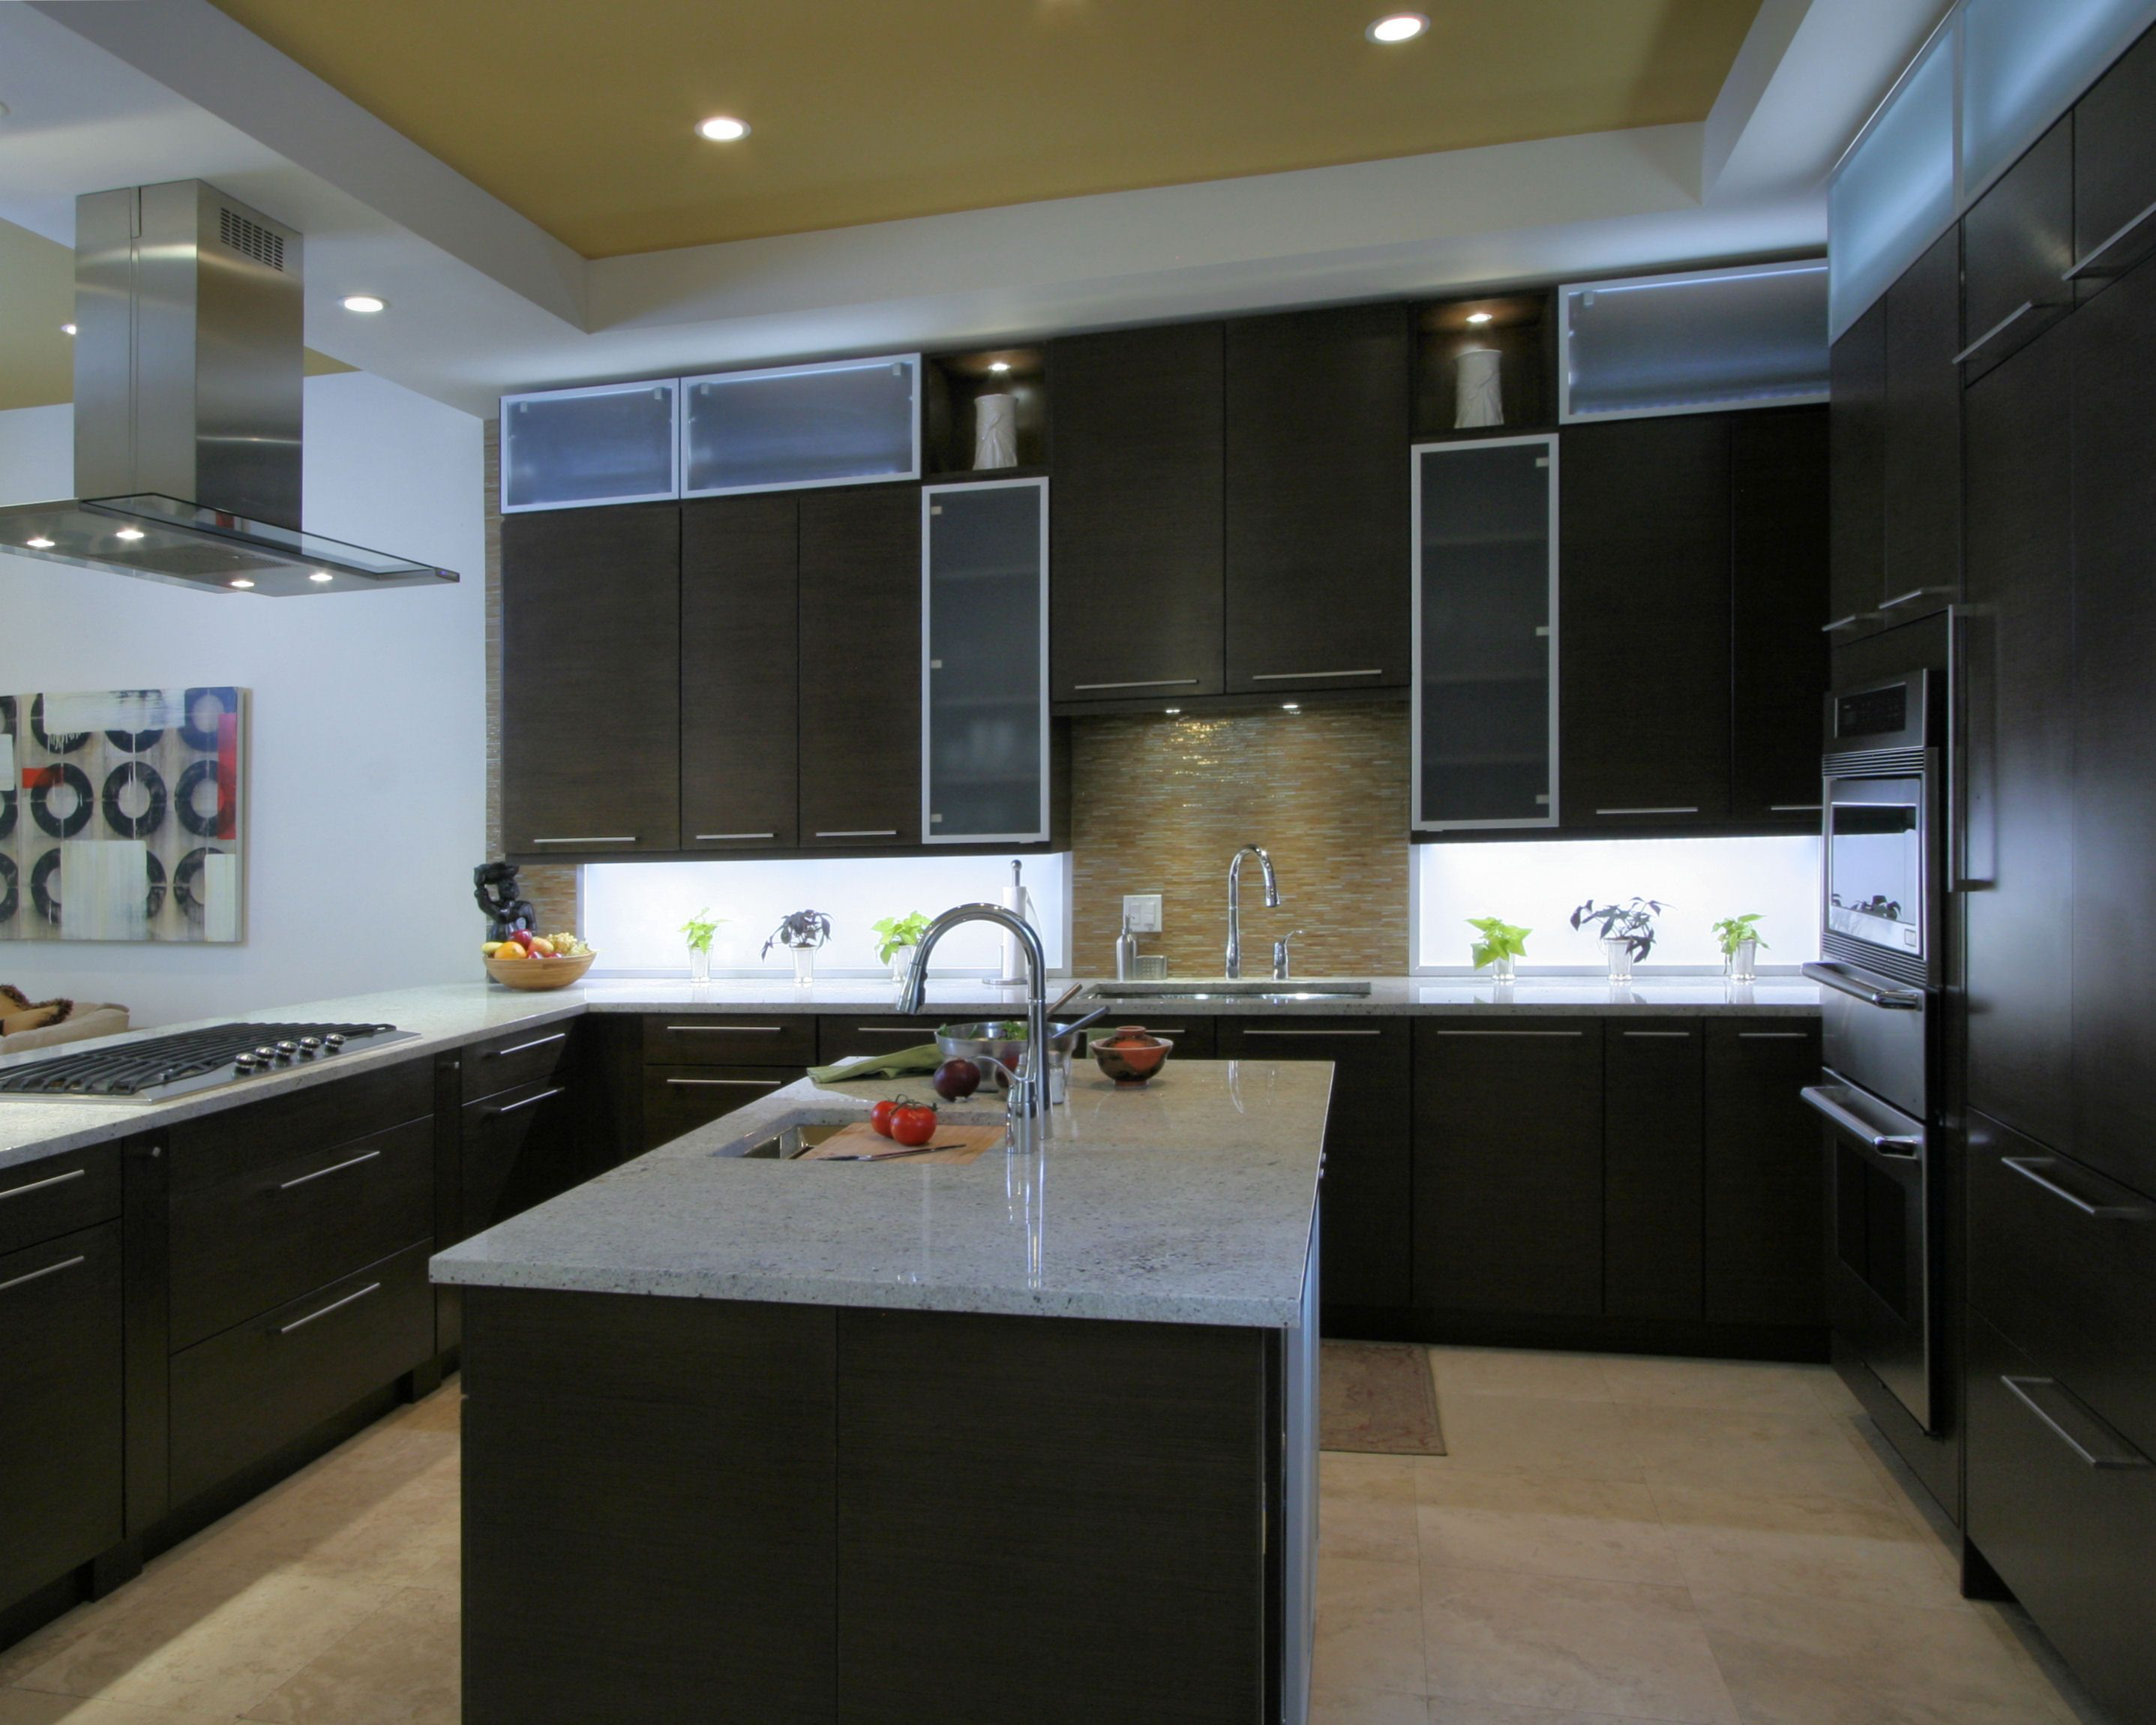 inspired led lighting. Contemporary Kitchen Featuring Inspired LED Cool White Lighting Led O